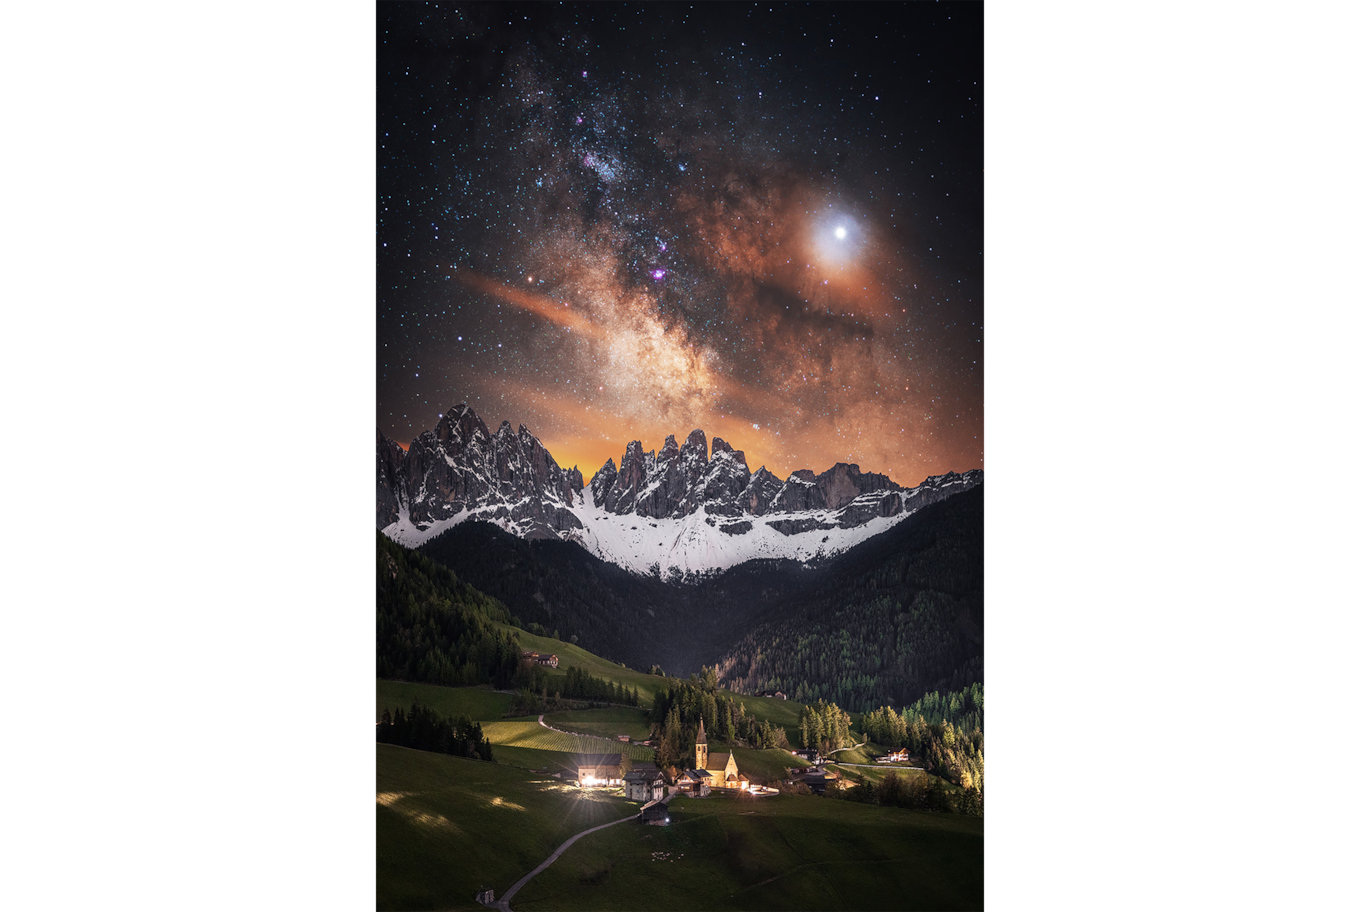 Stefan Liebermann sony alpha 7m3 small village in the heart of a valley surrounded by mountains and the milky way